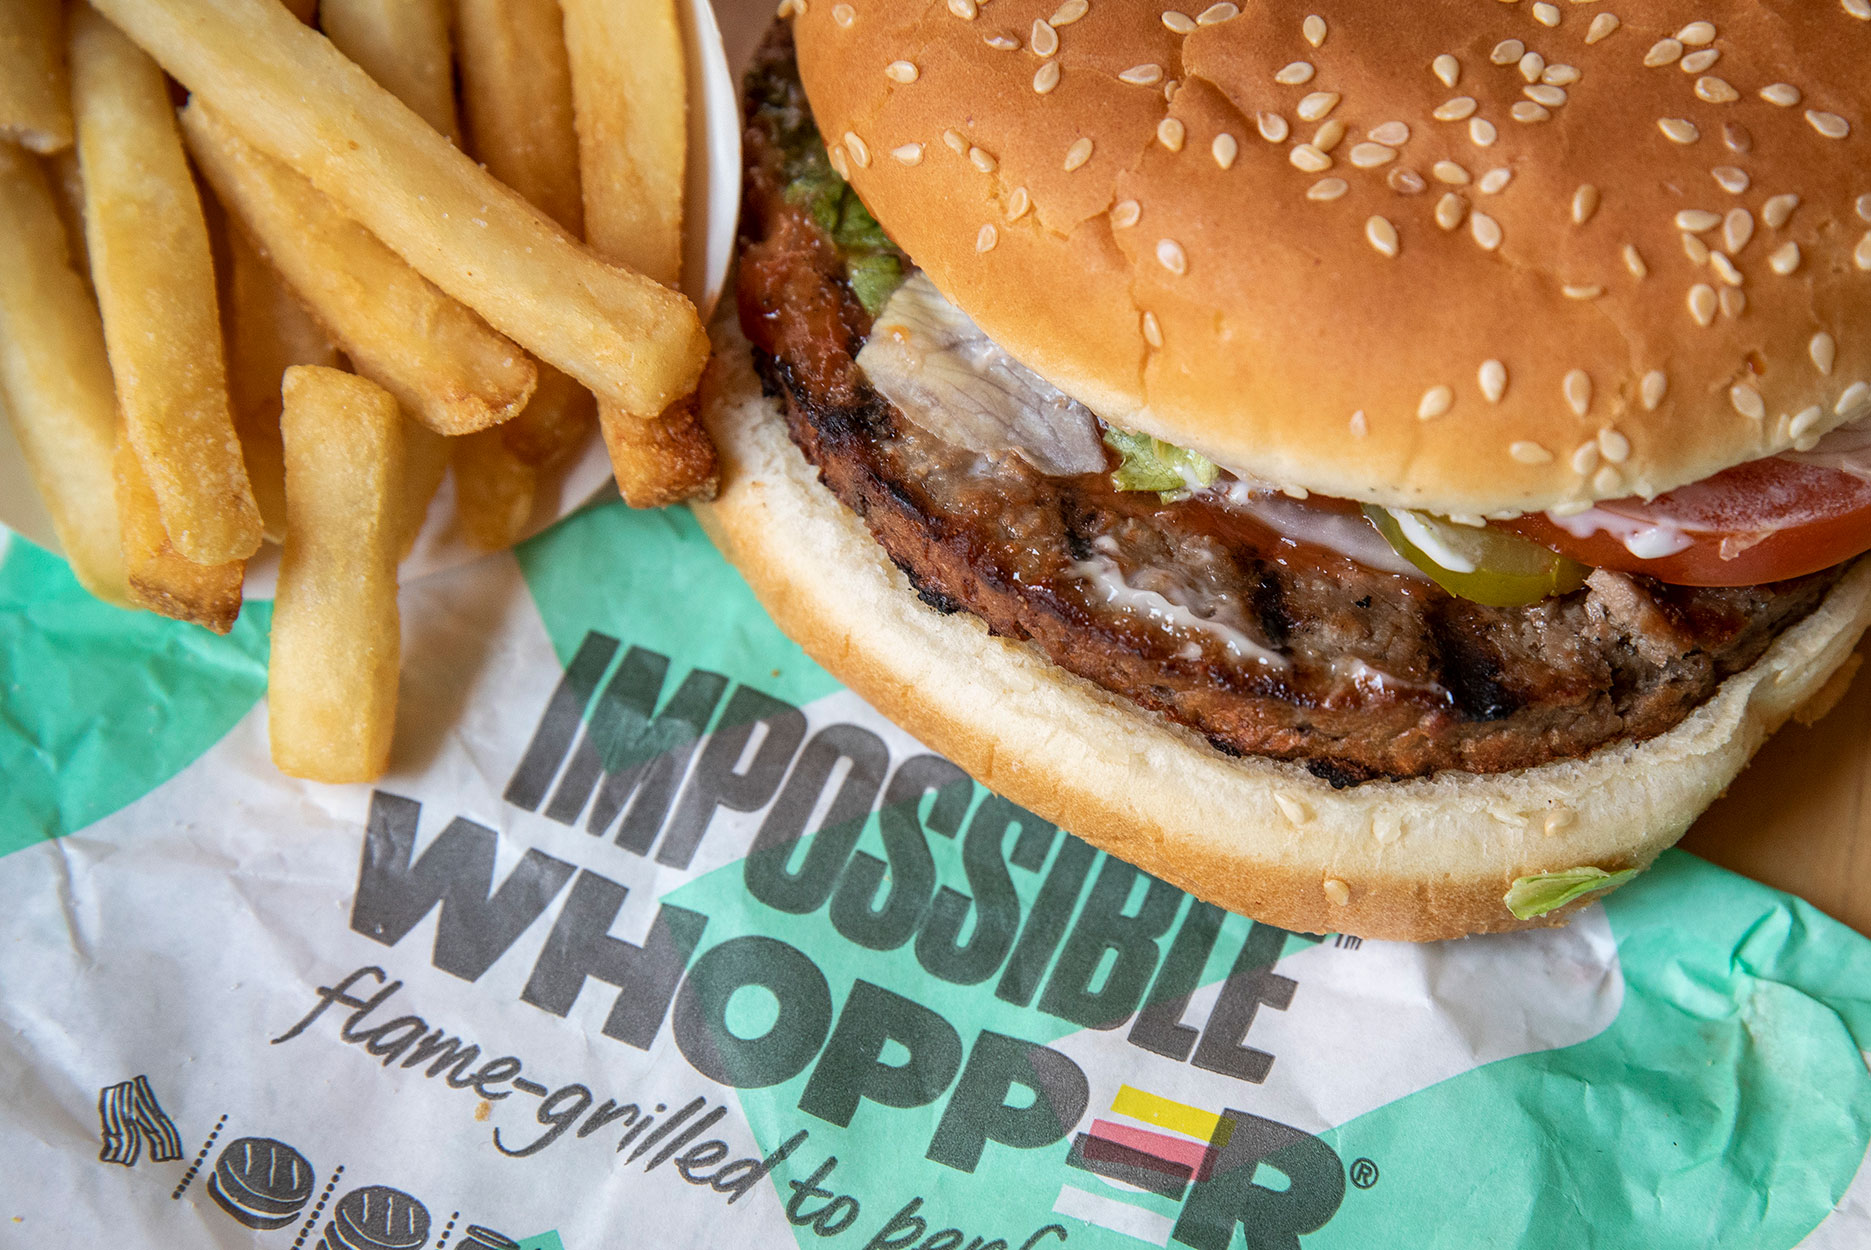 Burger King Lowers Price of Impossible Whopper